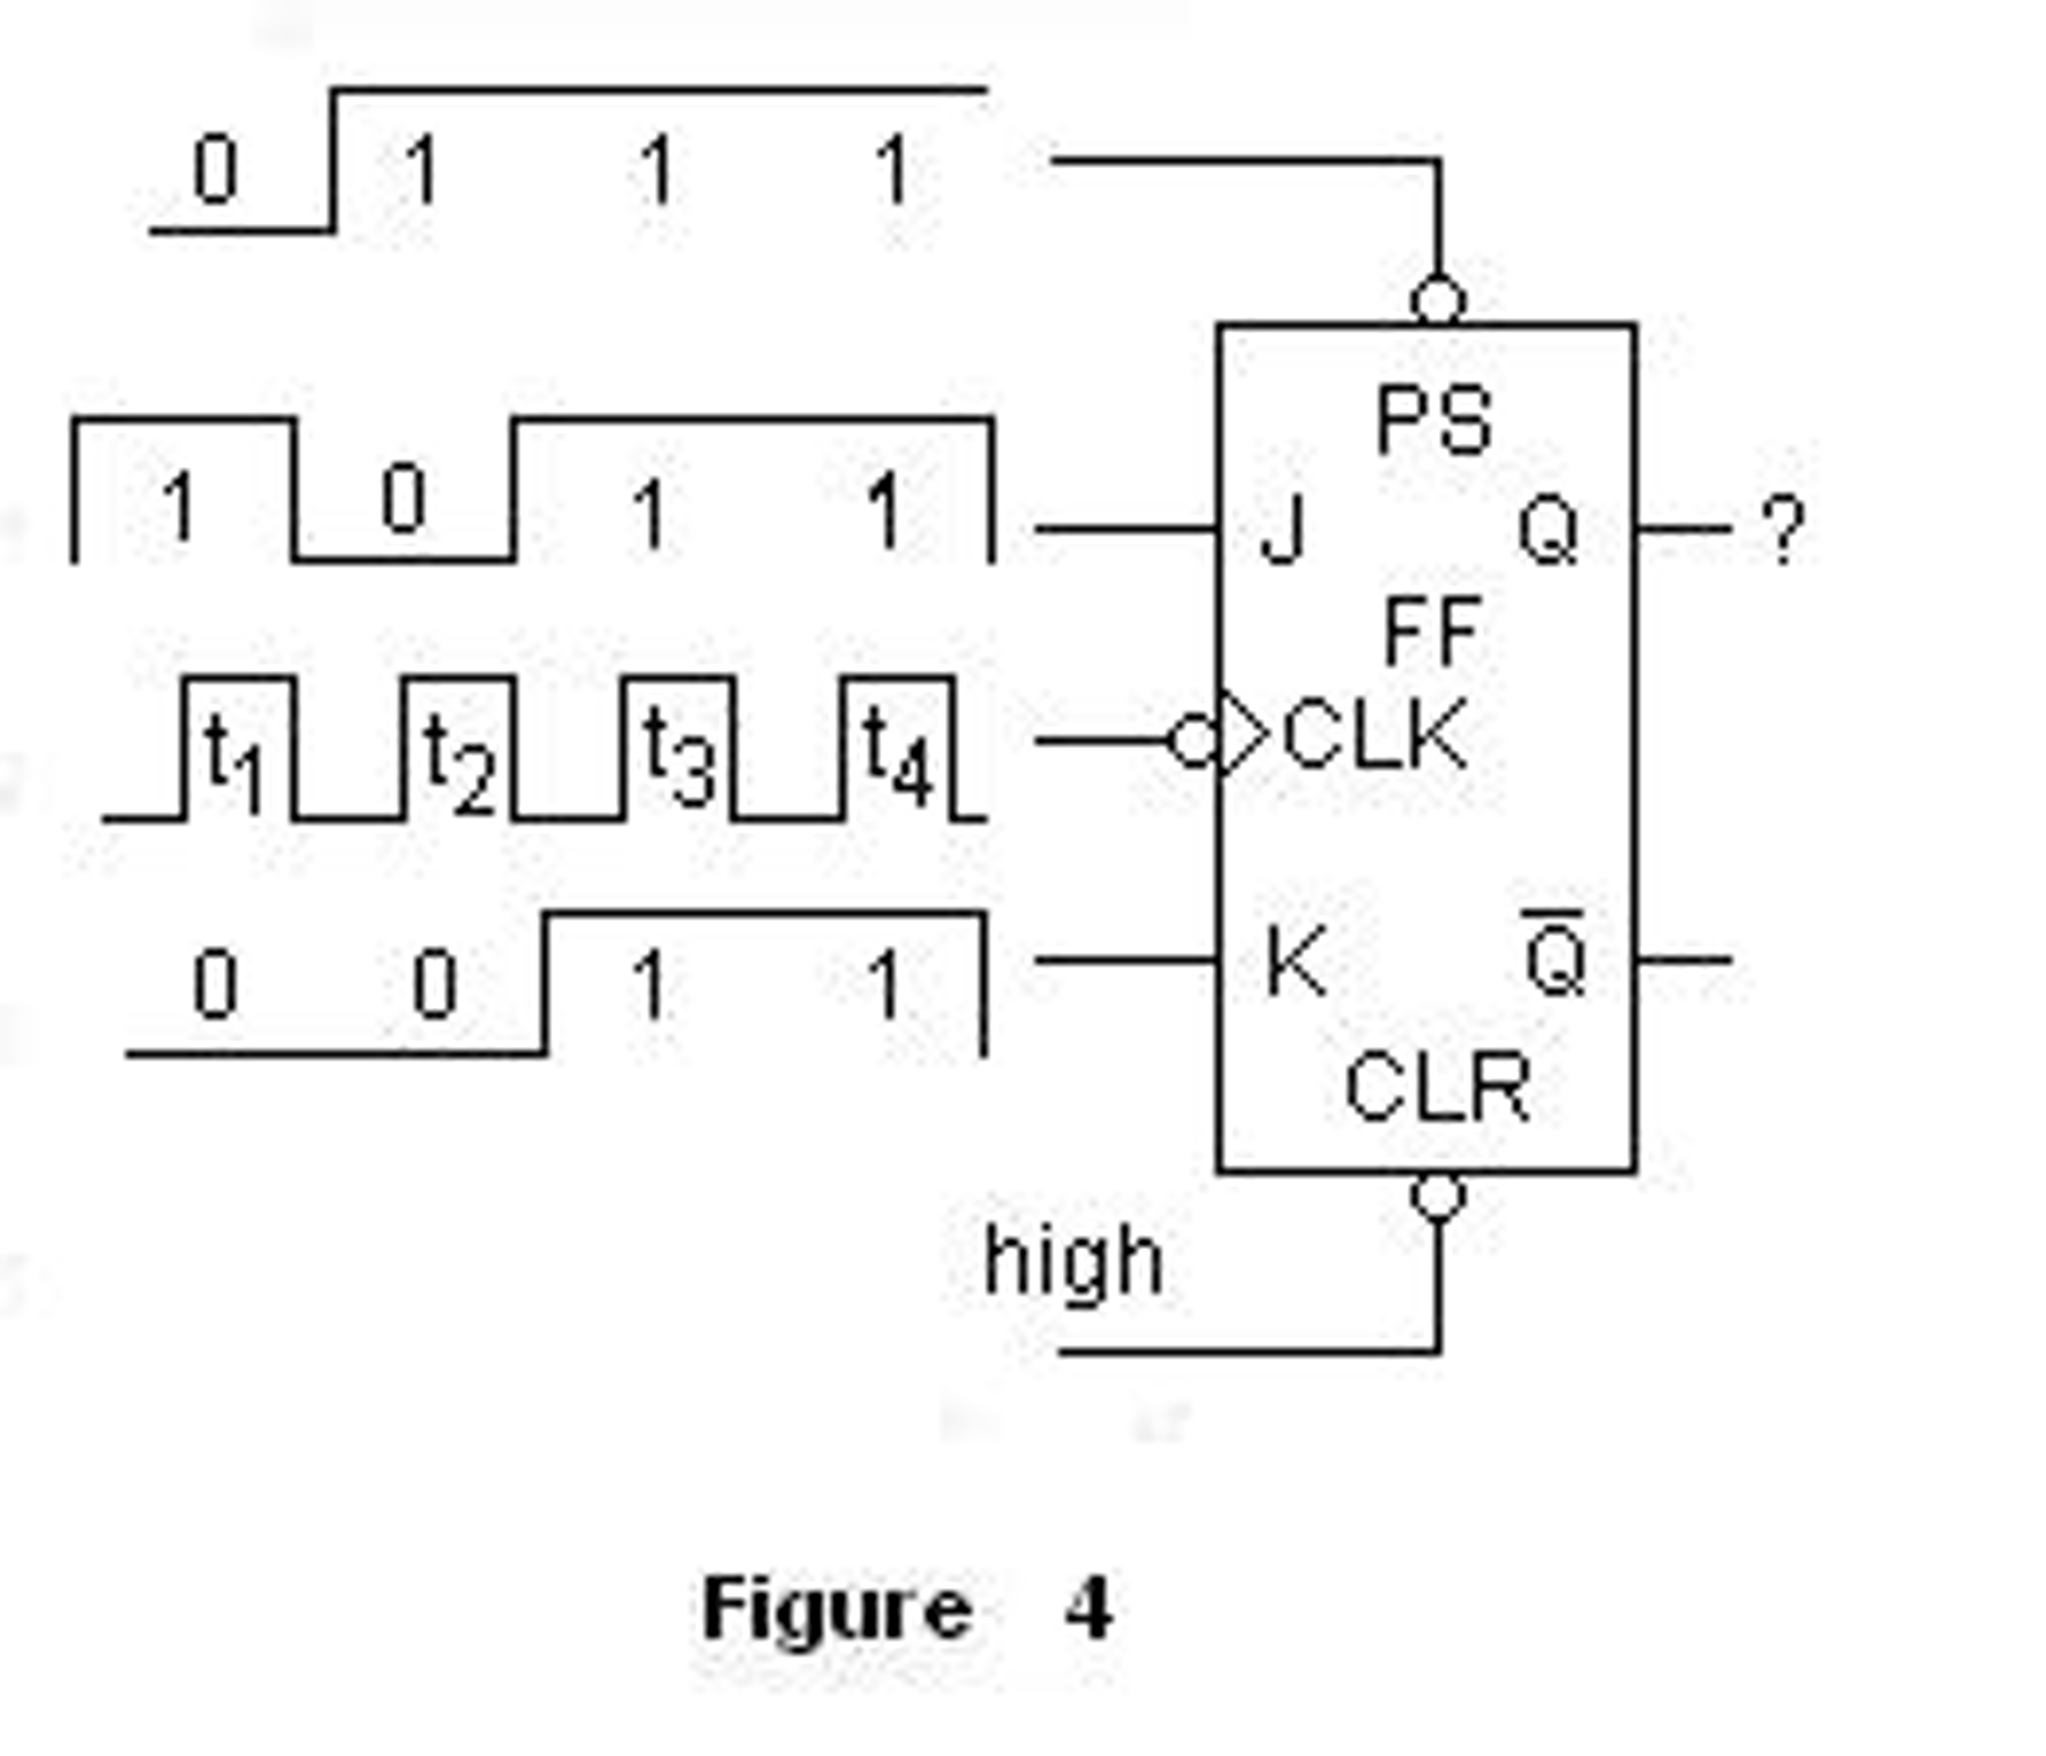 Solved In Figure 4 The J K Flip Flop Is M Circuit Diagram 0 1 Ps 234 Q Clr High